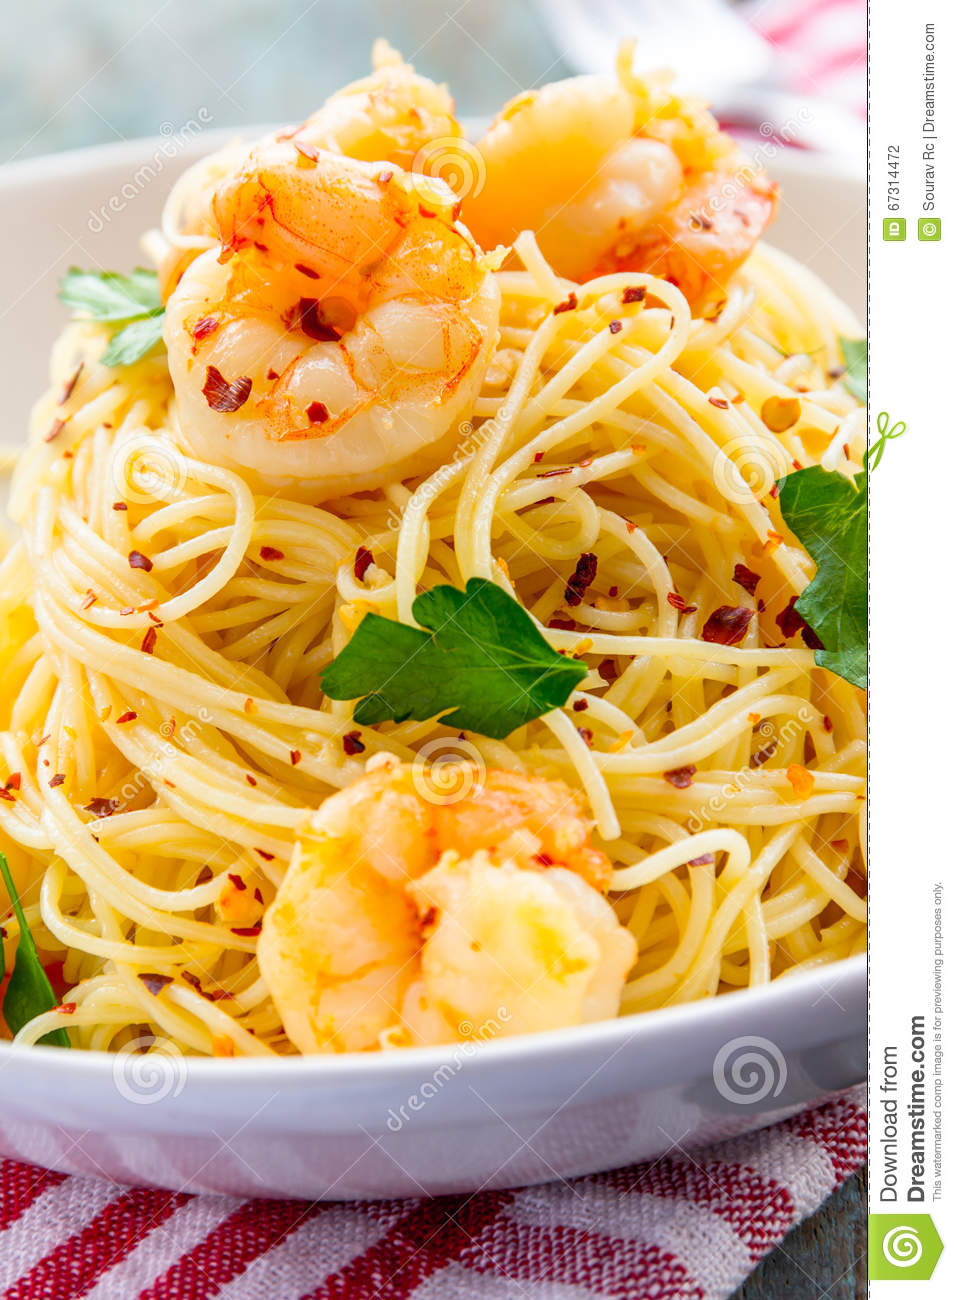 Angel Hair Pasta Shrimp Scampi Gina 39 S Shrimp Scampi With Angel Hair Pasta Recipe The Shrimp